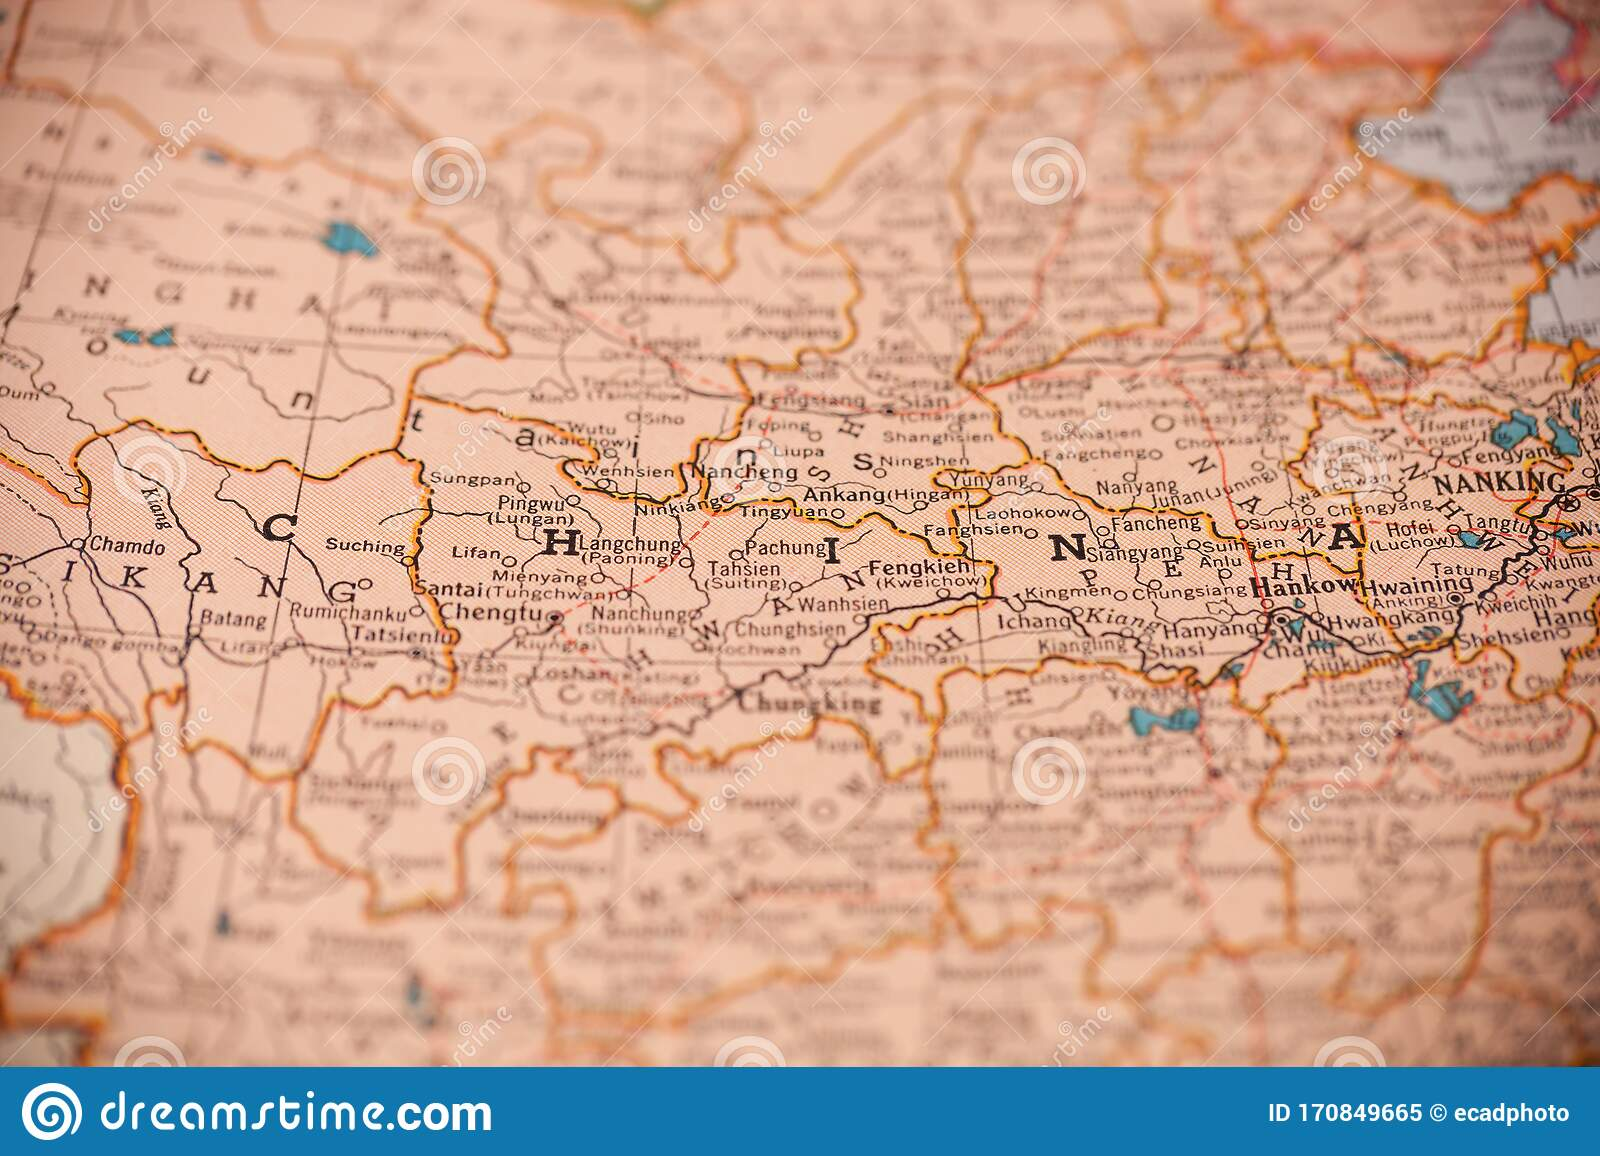 China Map In World Atlas Stock Image Image Of World 170849665